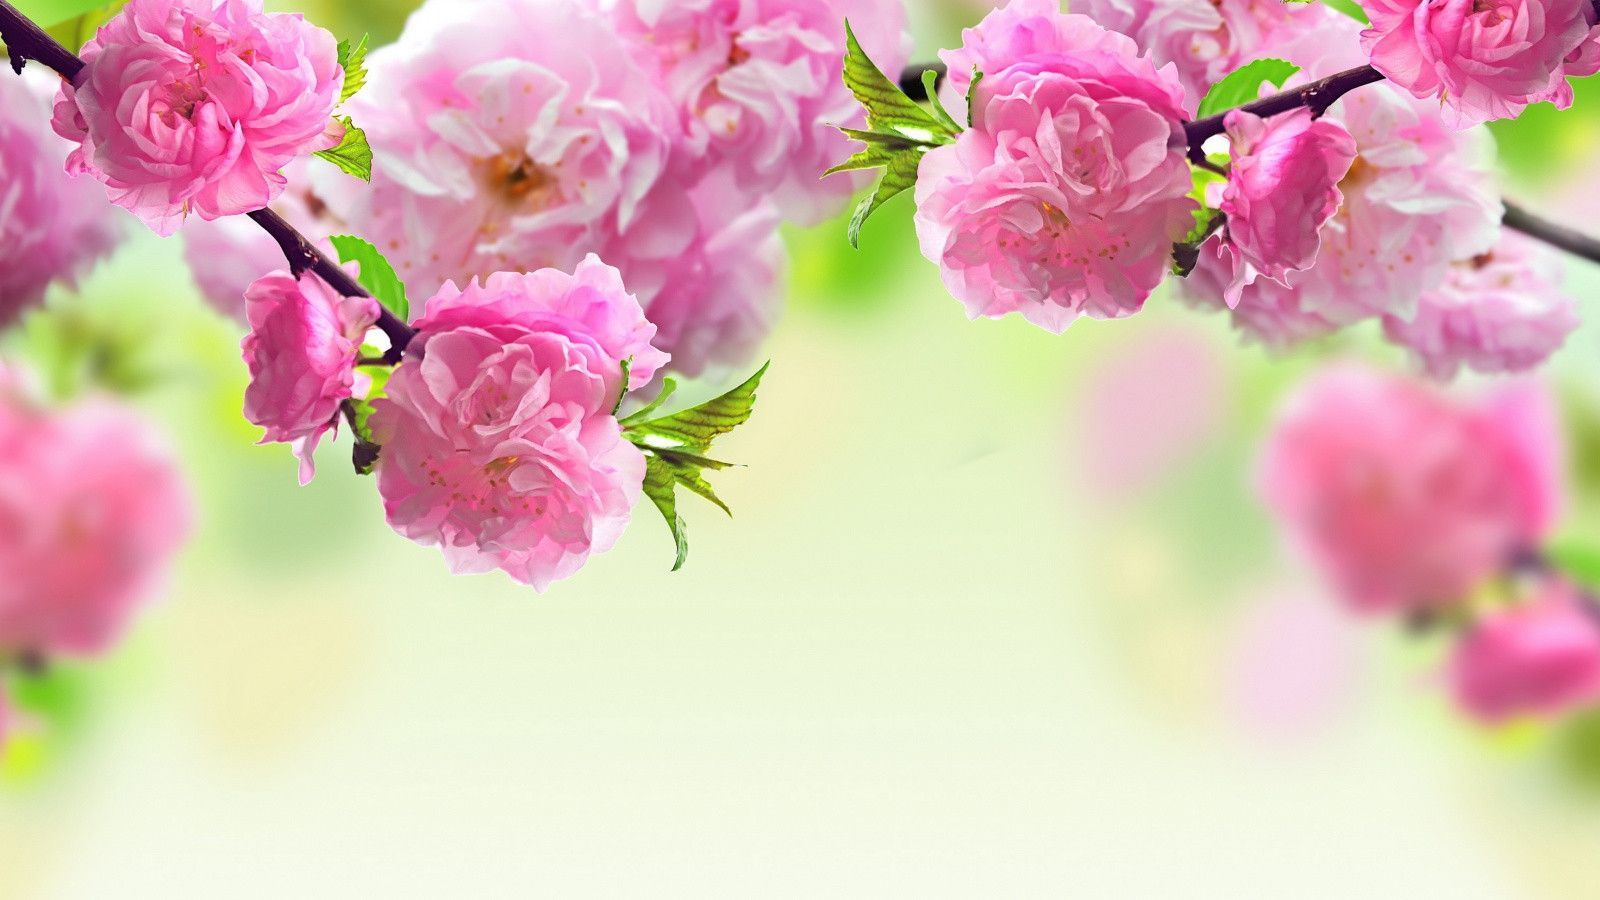 Spring Flowers Backgrounds Desktop.